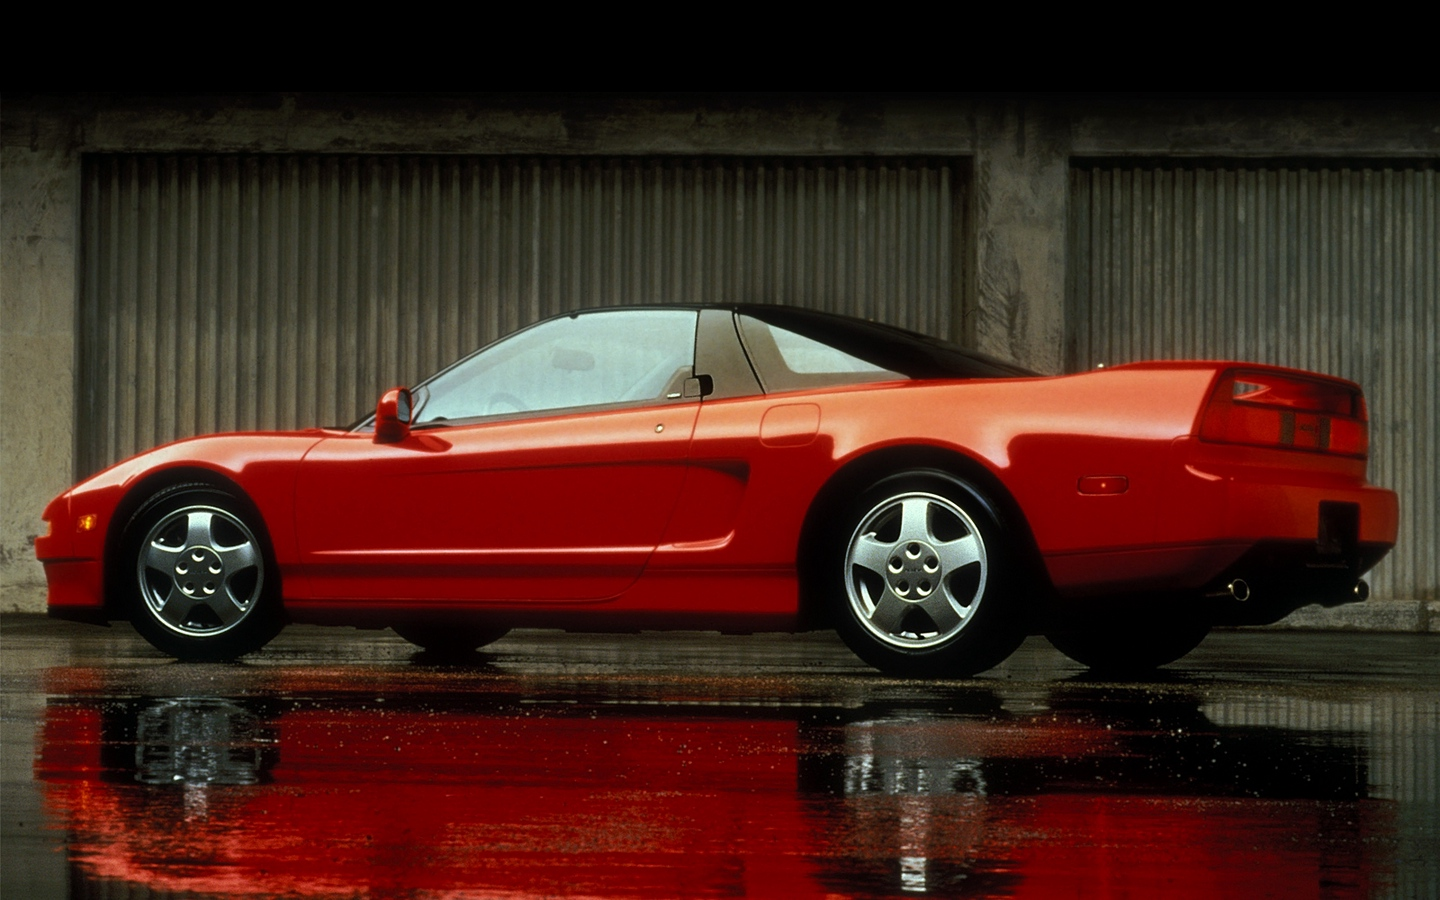 Acura NSX 1990 acura_nsx_red_side_view_style_auto_reflection_wet_asphalt_13676_1440x900